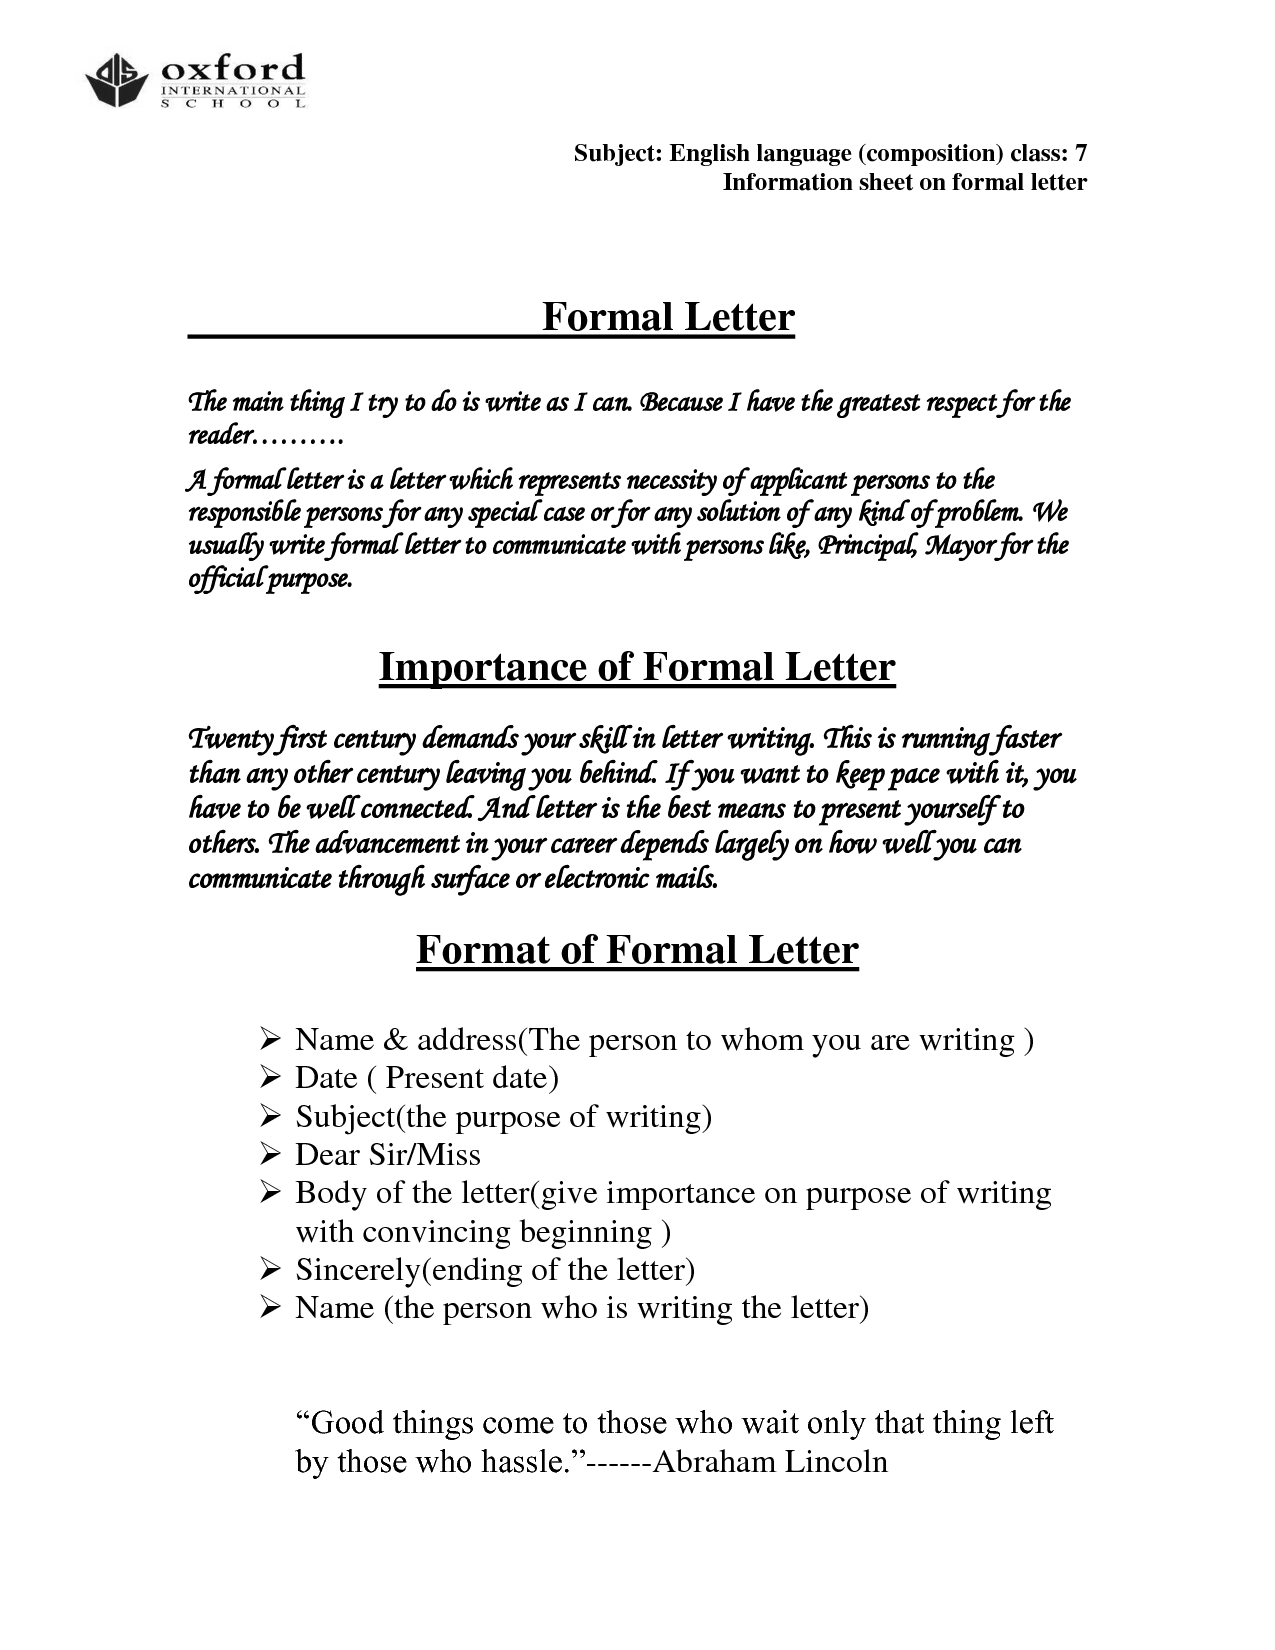 Official letter format templateofficial letter business letter official letter format templateofficial letter business letter sample altavistaventures Image collections